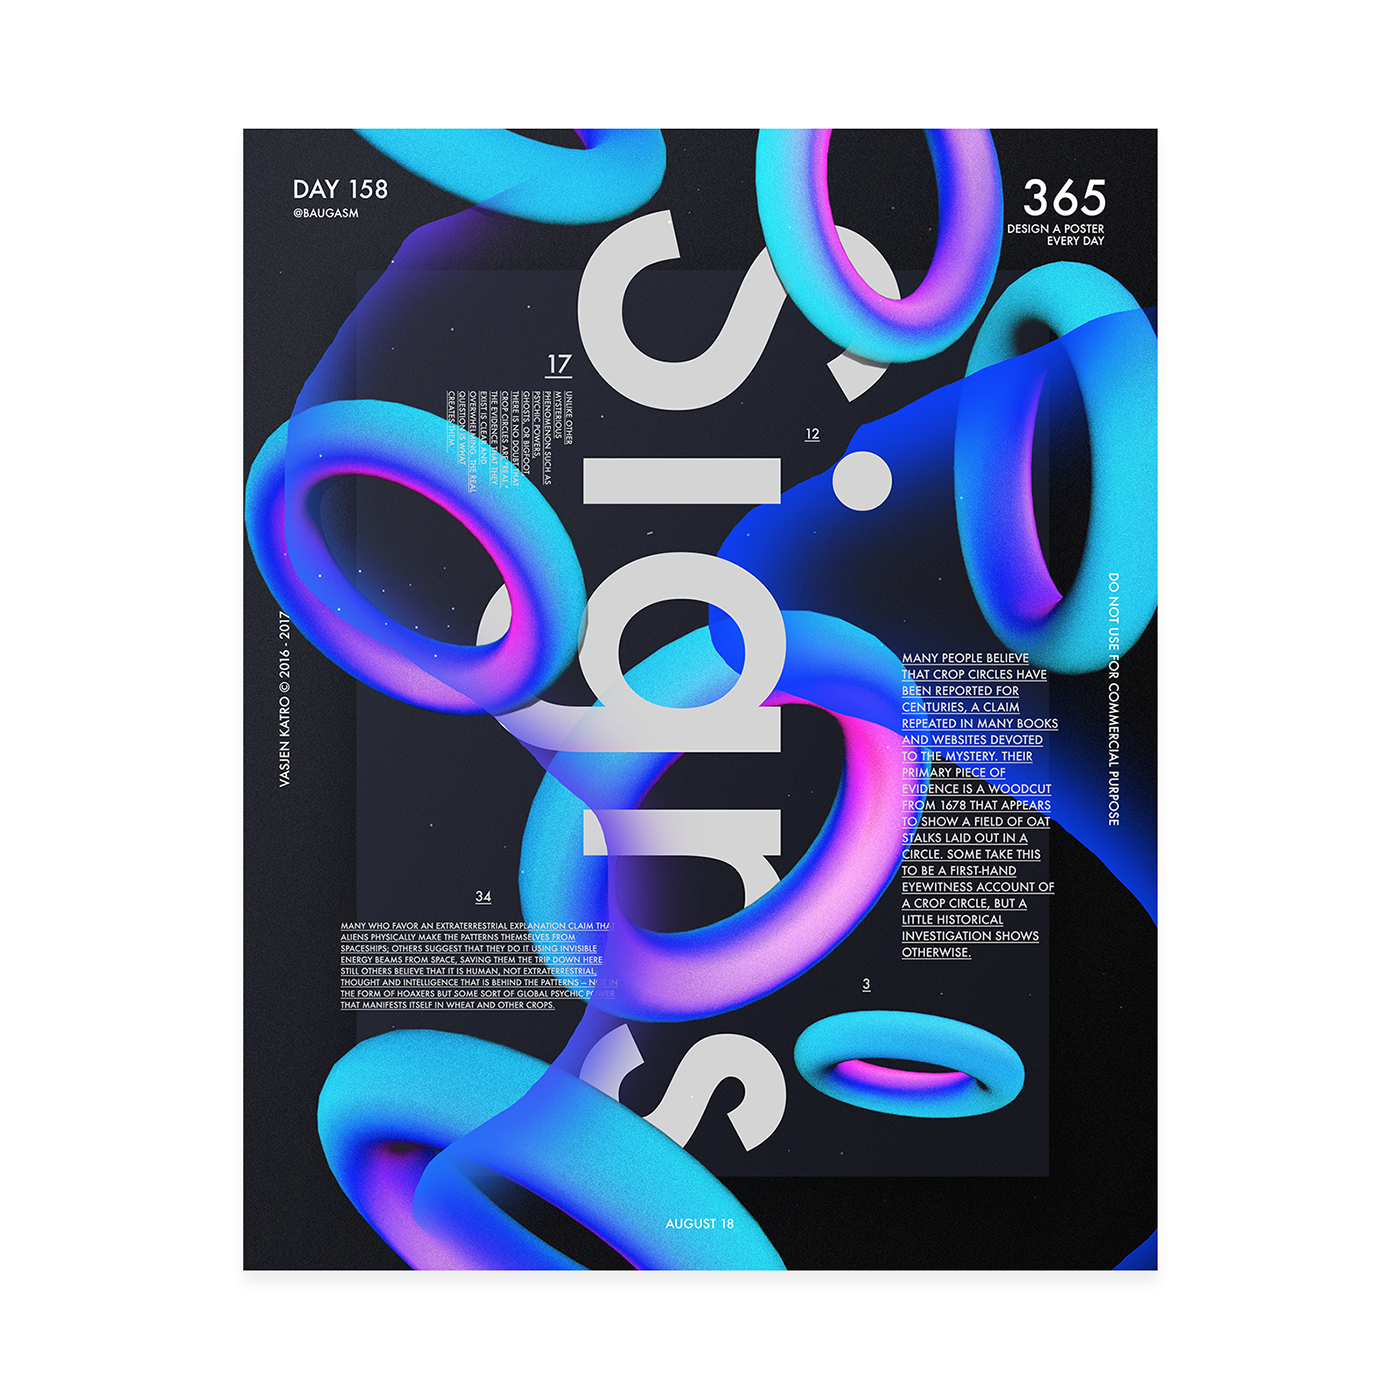 Mysterious poster design with 3d text - Find This Pin And More On Graphic Editorial